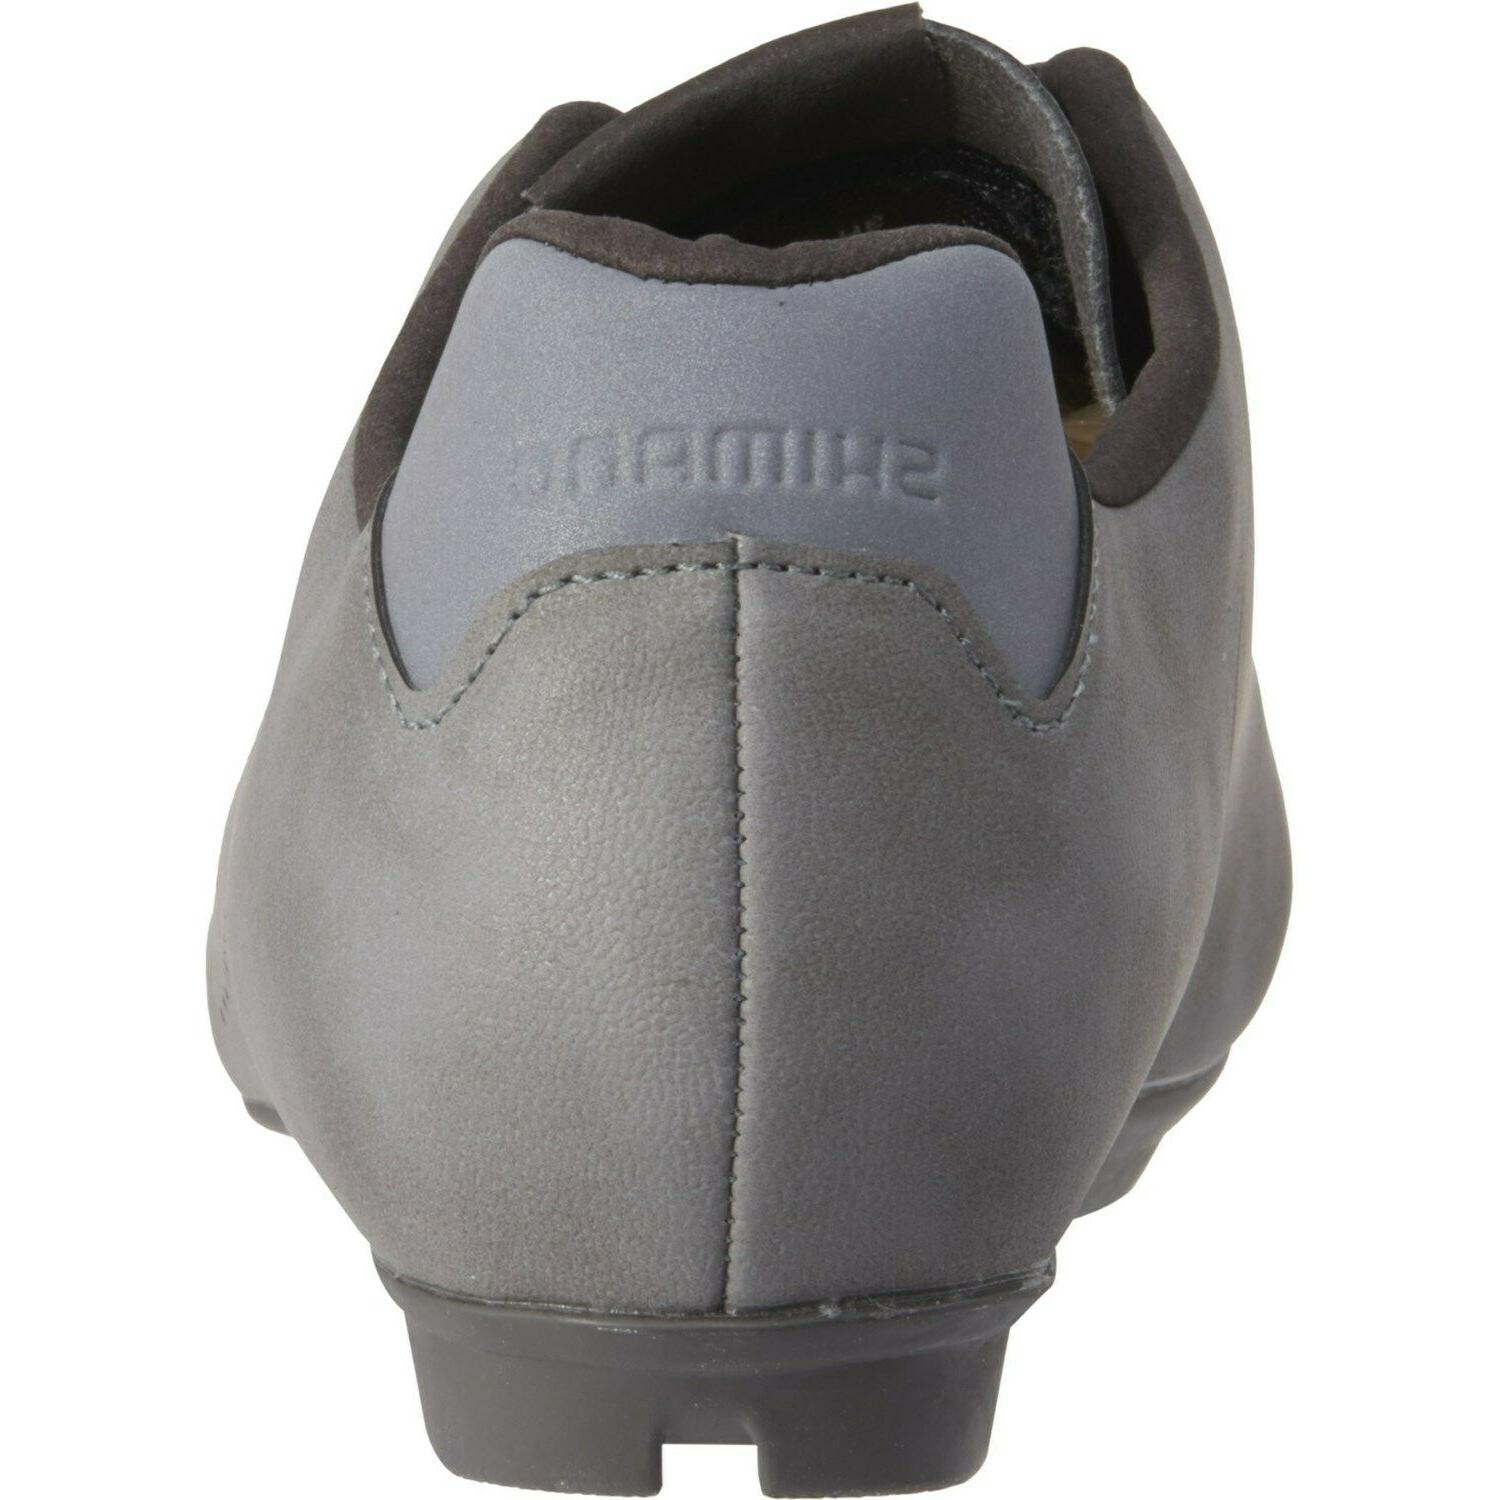 NEW Shimano Bicycle Shoes : EUR 44/46 US 9.5/11